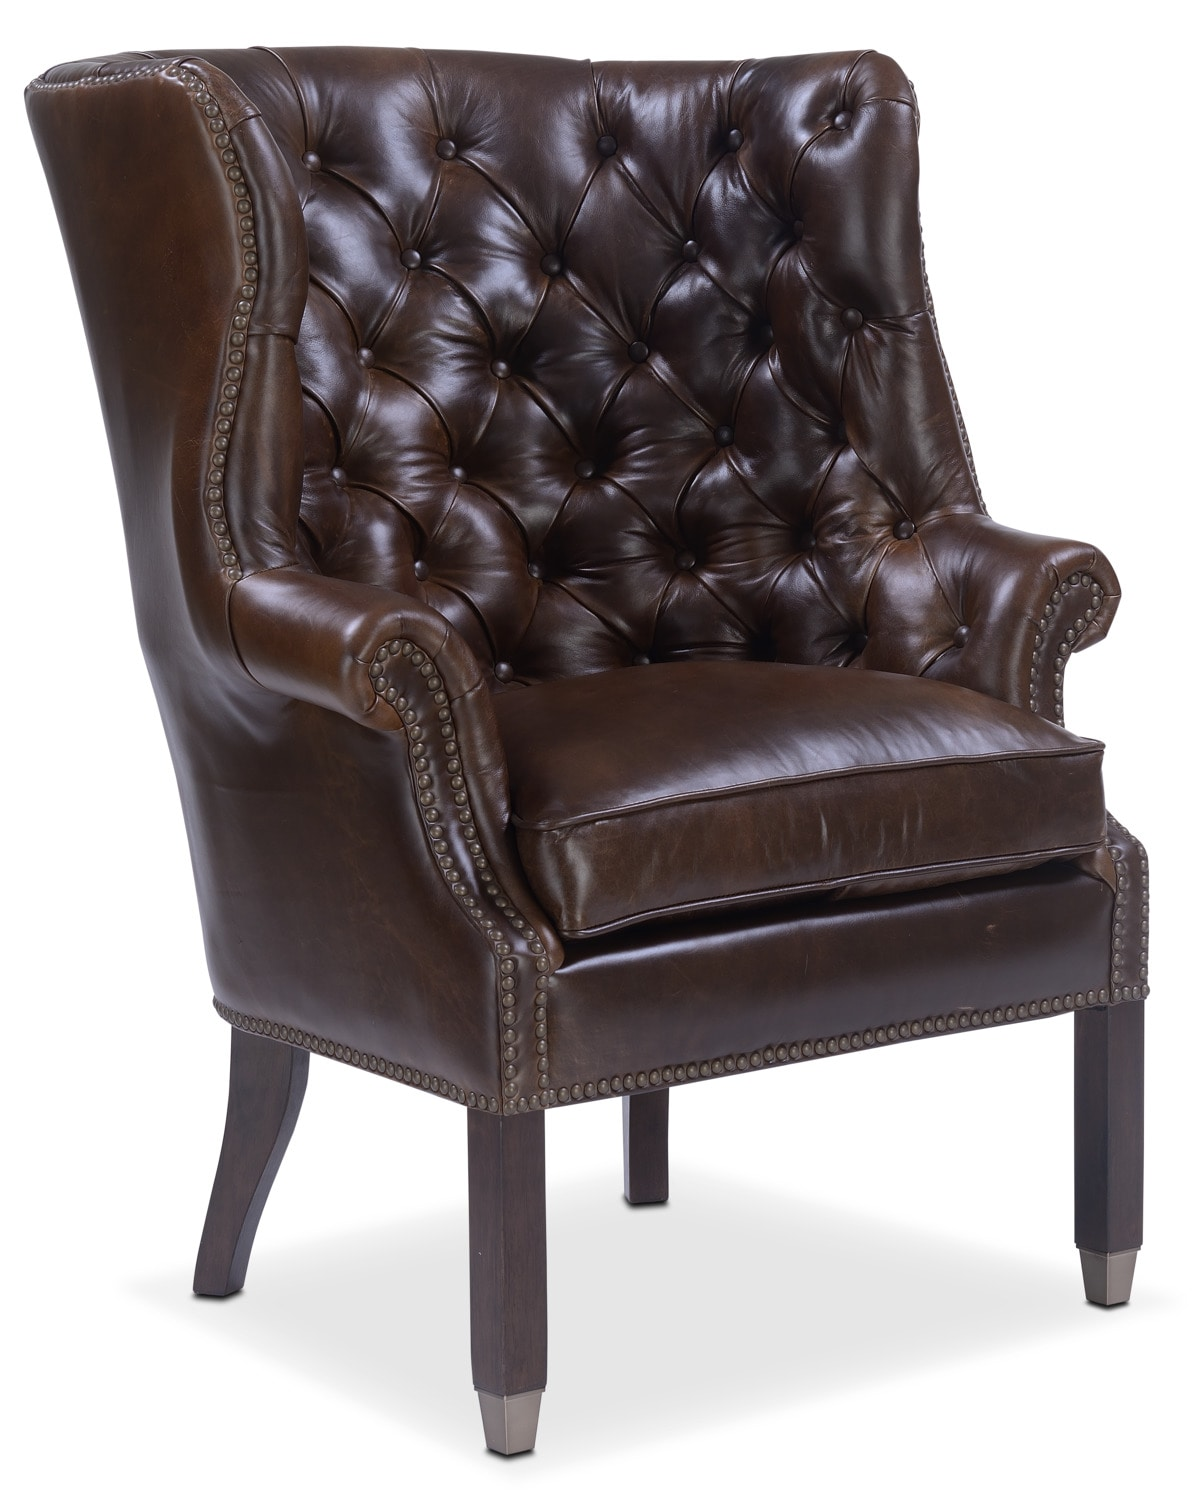 Living Room Furniture - Cranston Accent Chair - Brown